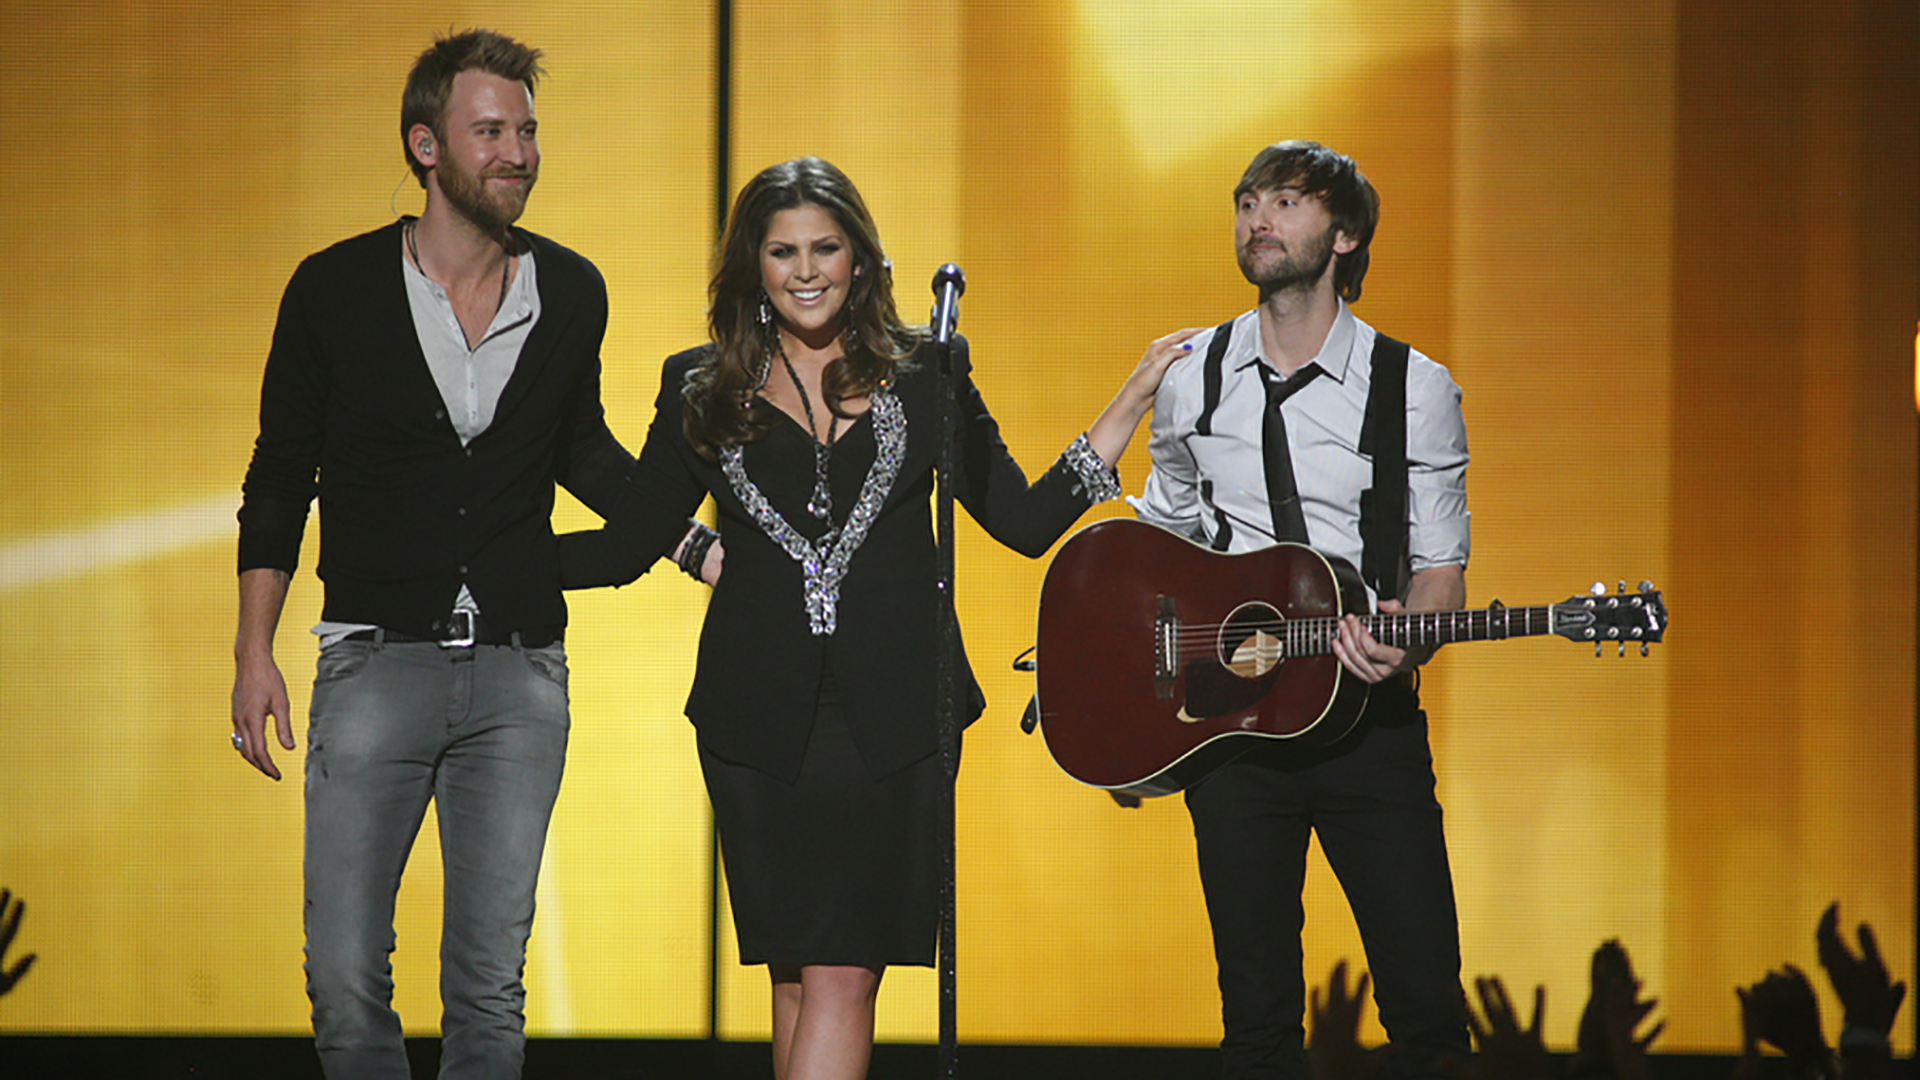 34. Lady Antebellum perform